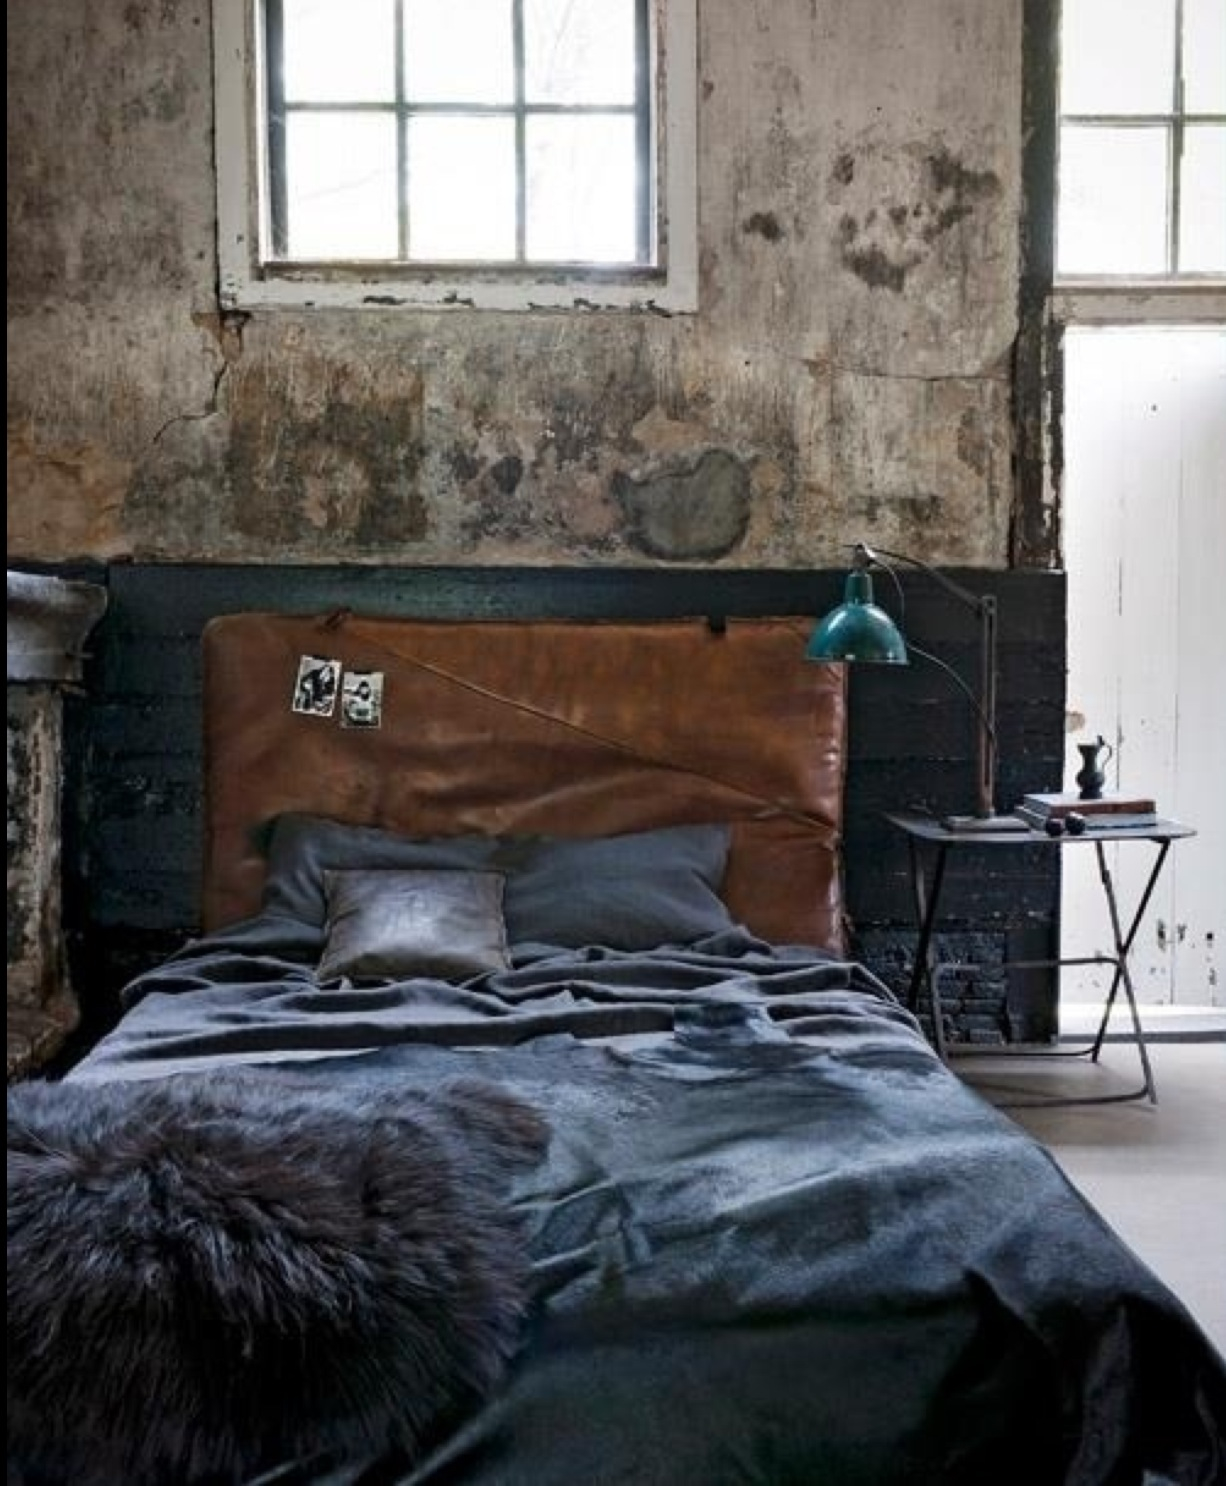 25 Best Ideas About Industrial Style On Pinterest: 25 Stylish Industrial Bedroom Design Ideas